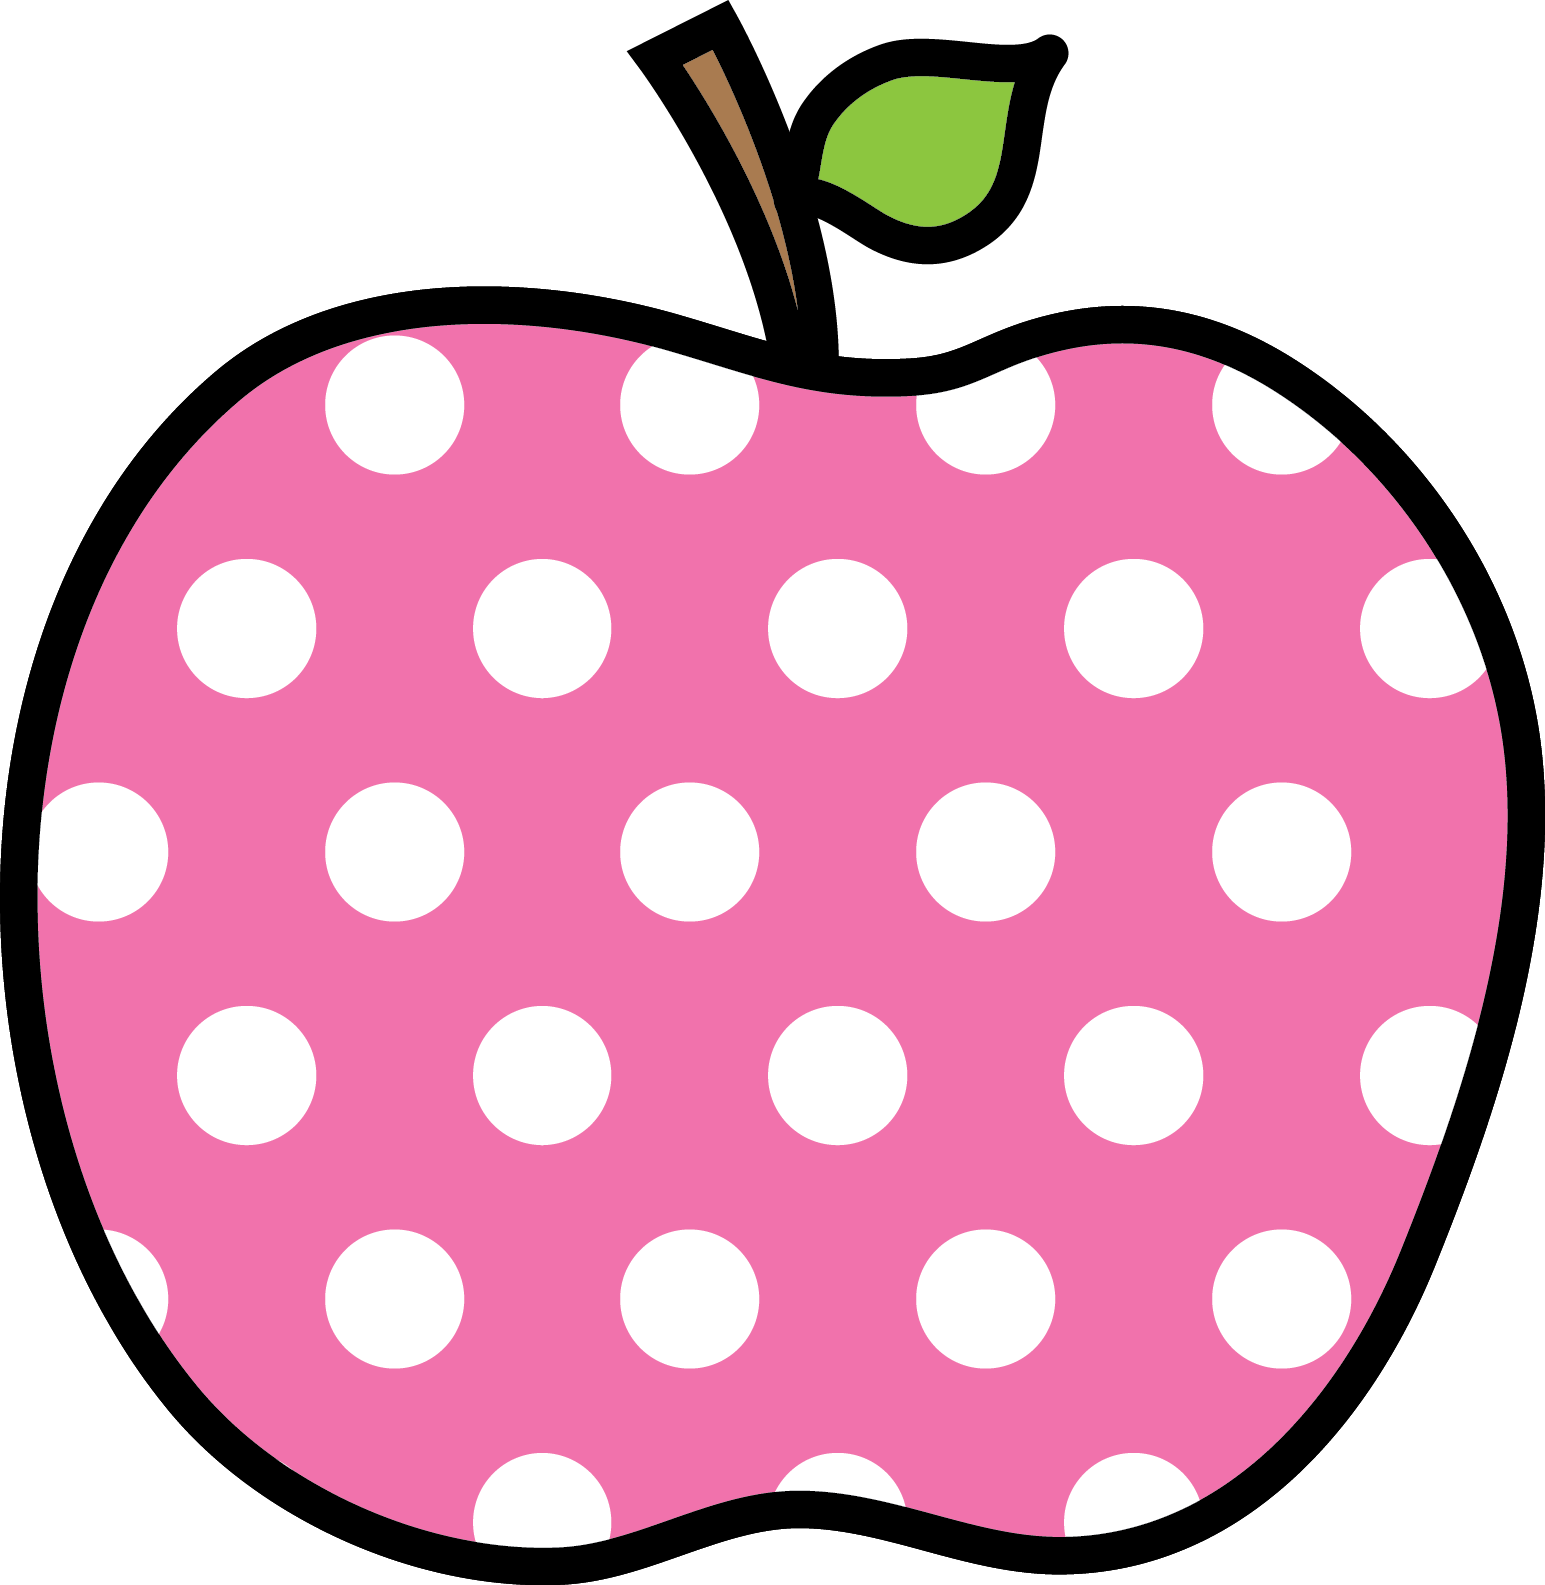 Polka dot apples png. Apple encode clipart to